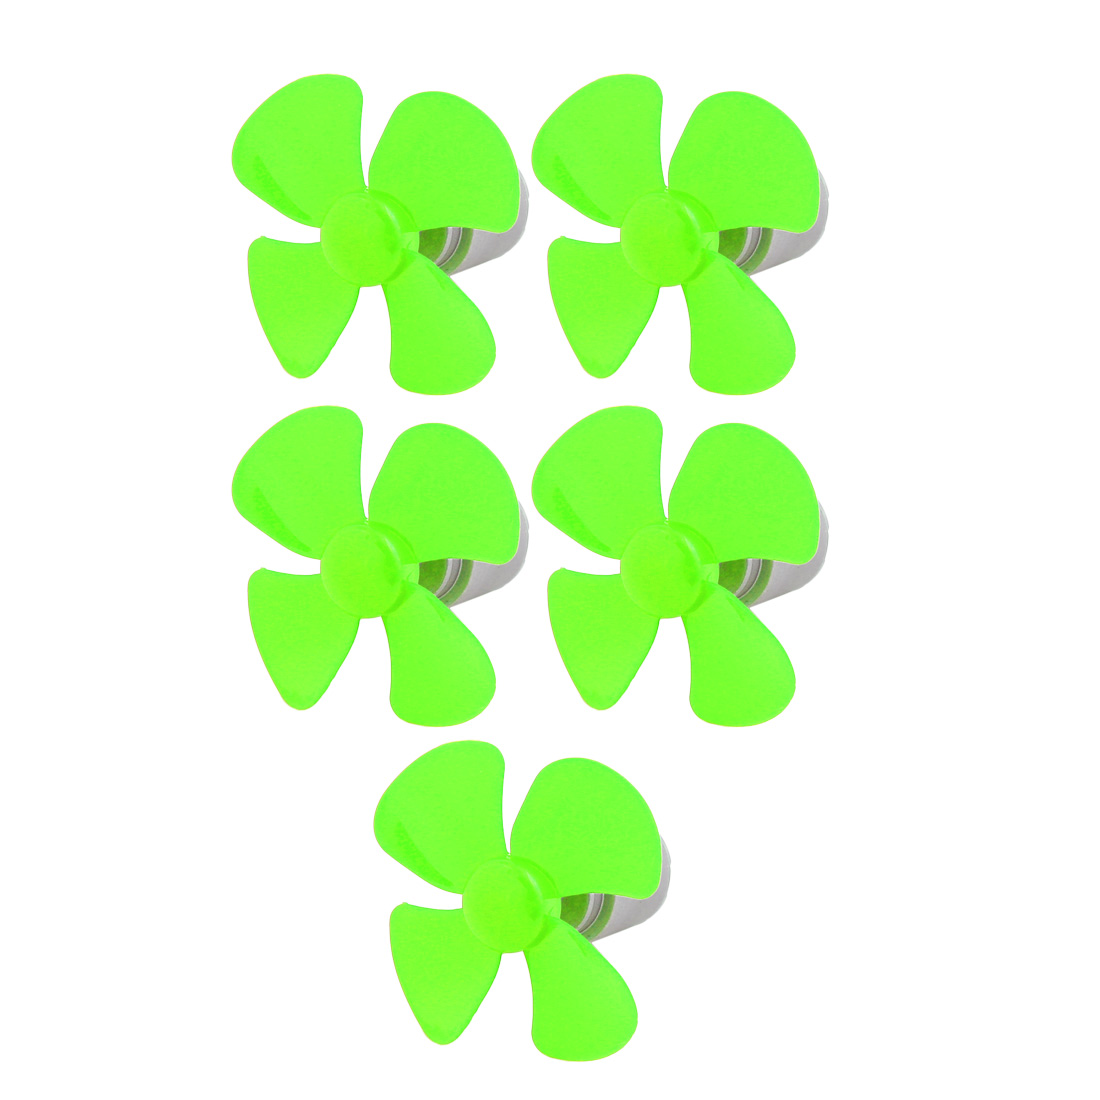 5pcs DC 3V 0.13A 11000RPM Green Strong Force Motor 4 Vanes 56mm Dia Propeller for RC Aircraft